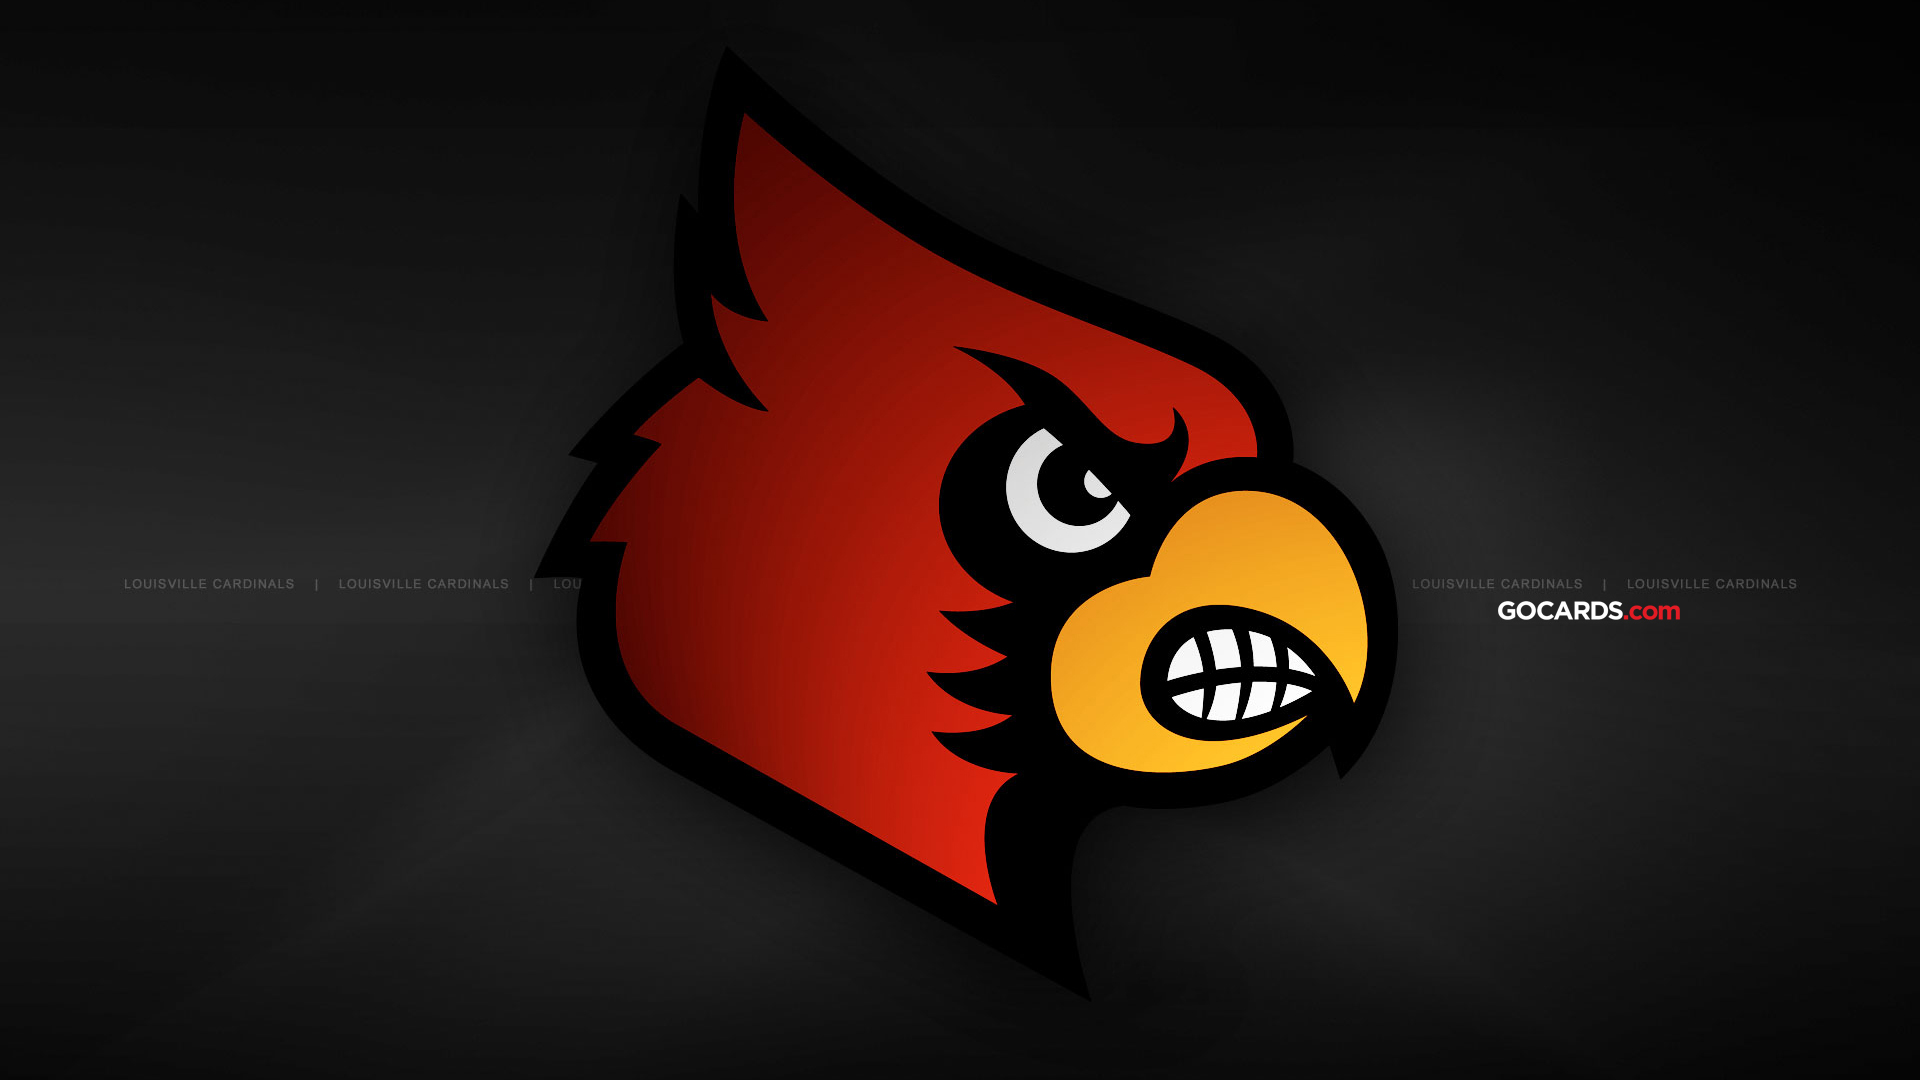 Wallpaper Louisville Wallpapers University Of Louisville Athletics